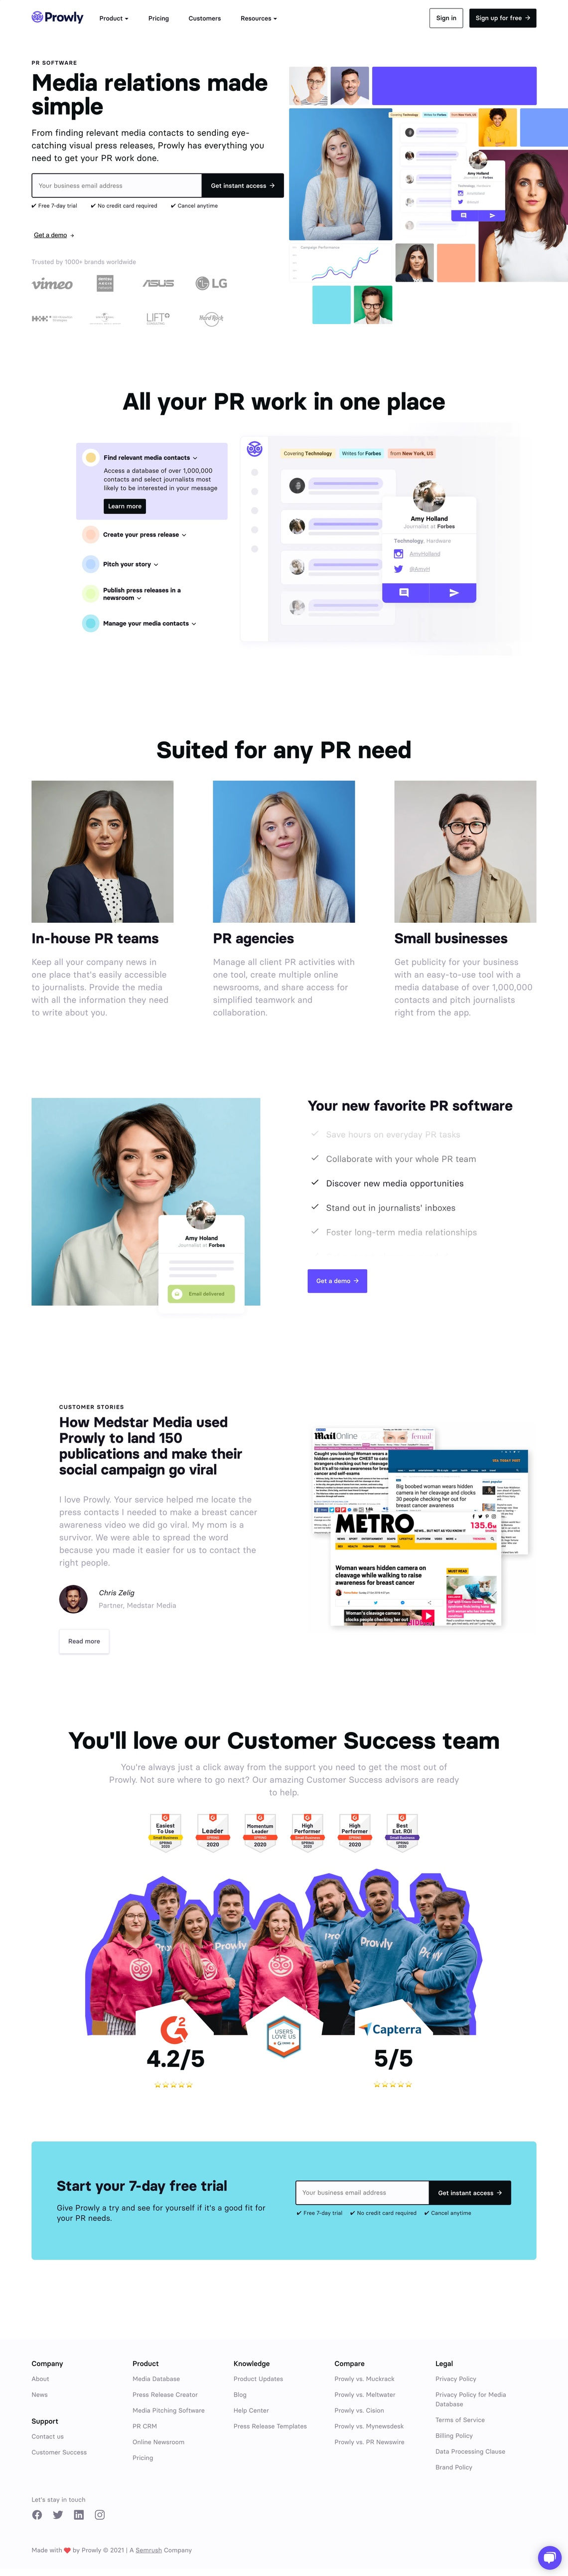 Prowly – PR & Media Relations Software